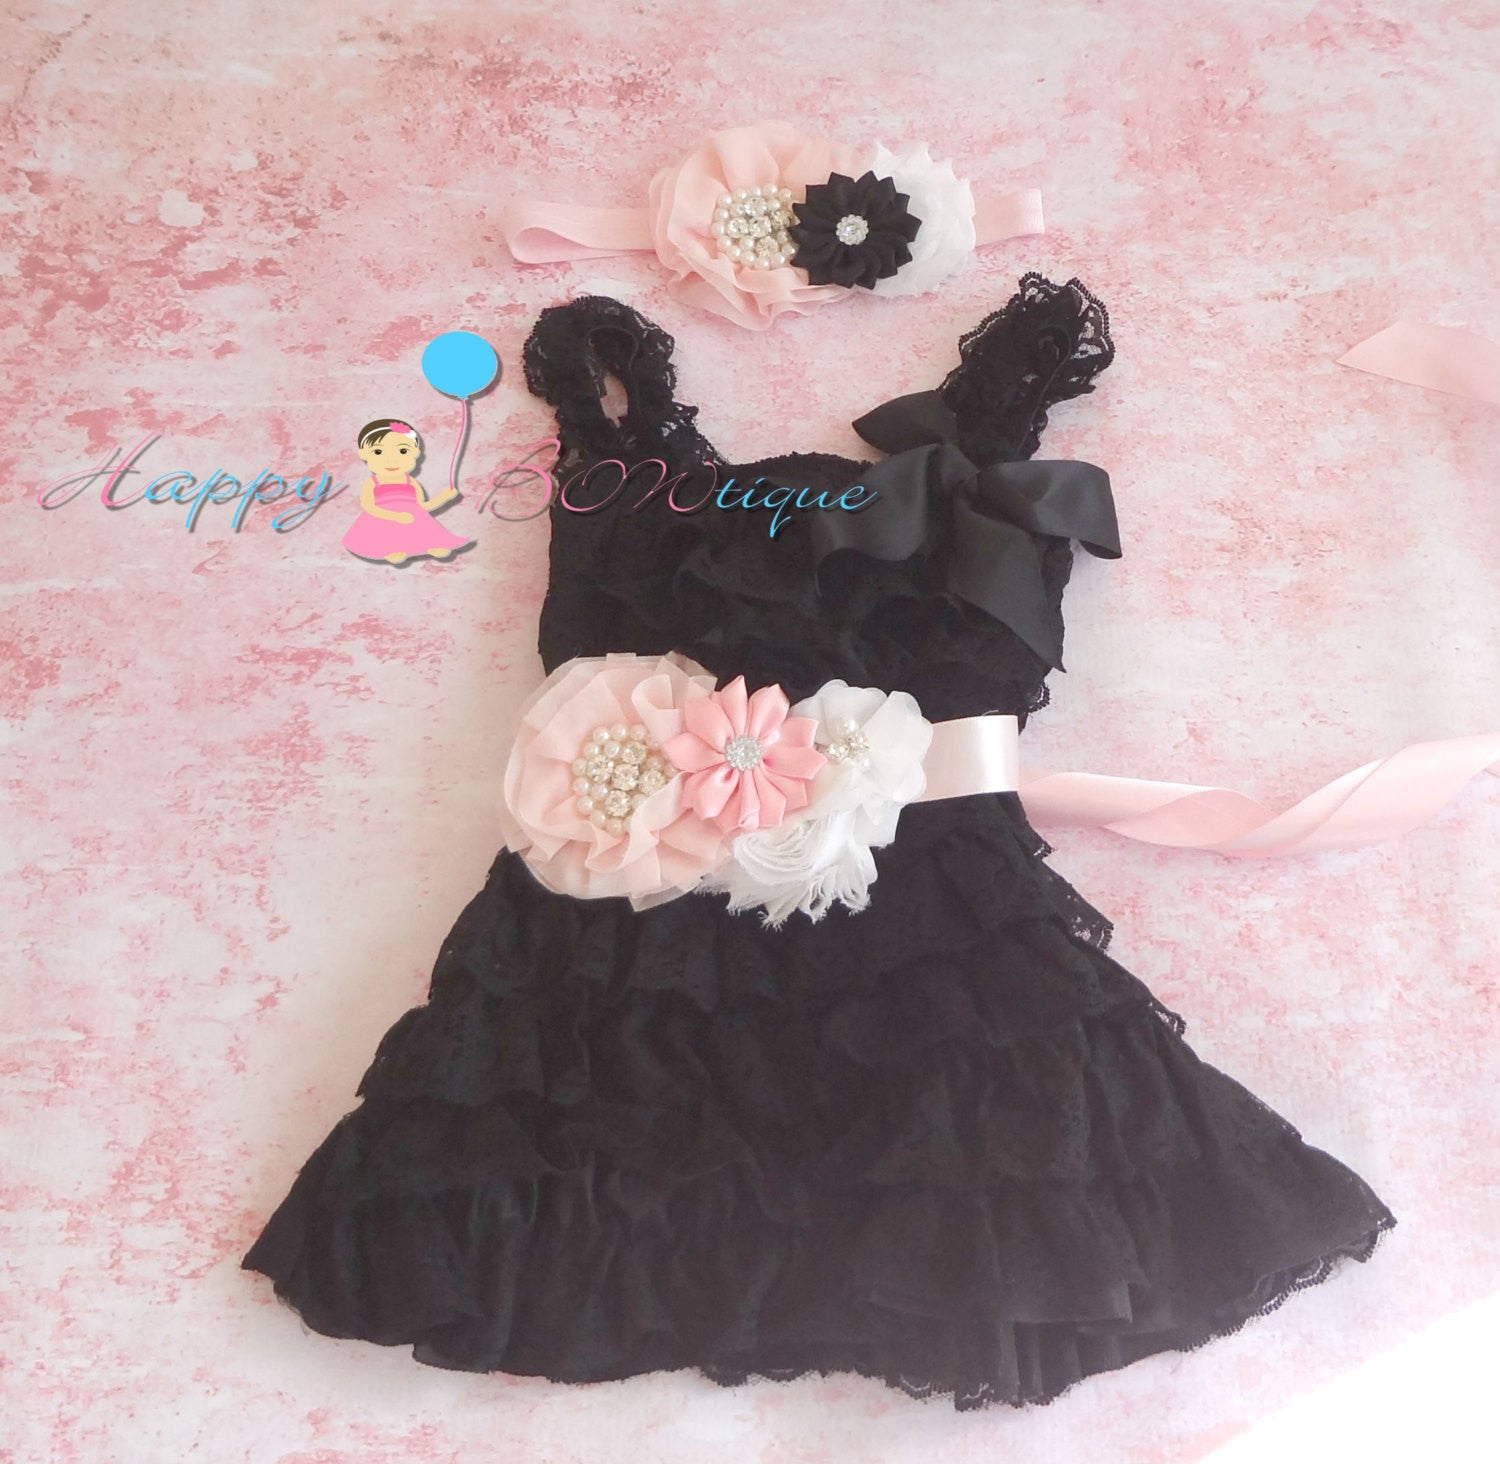 Girl Blush Pink and Black Lace Dress / Girl Black Dress Set - Happy BOWtique - children's clothing, Baby Girl clothing